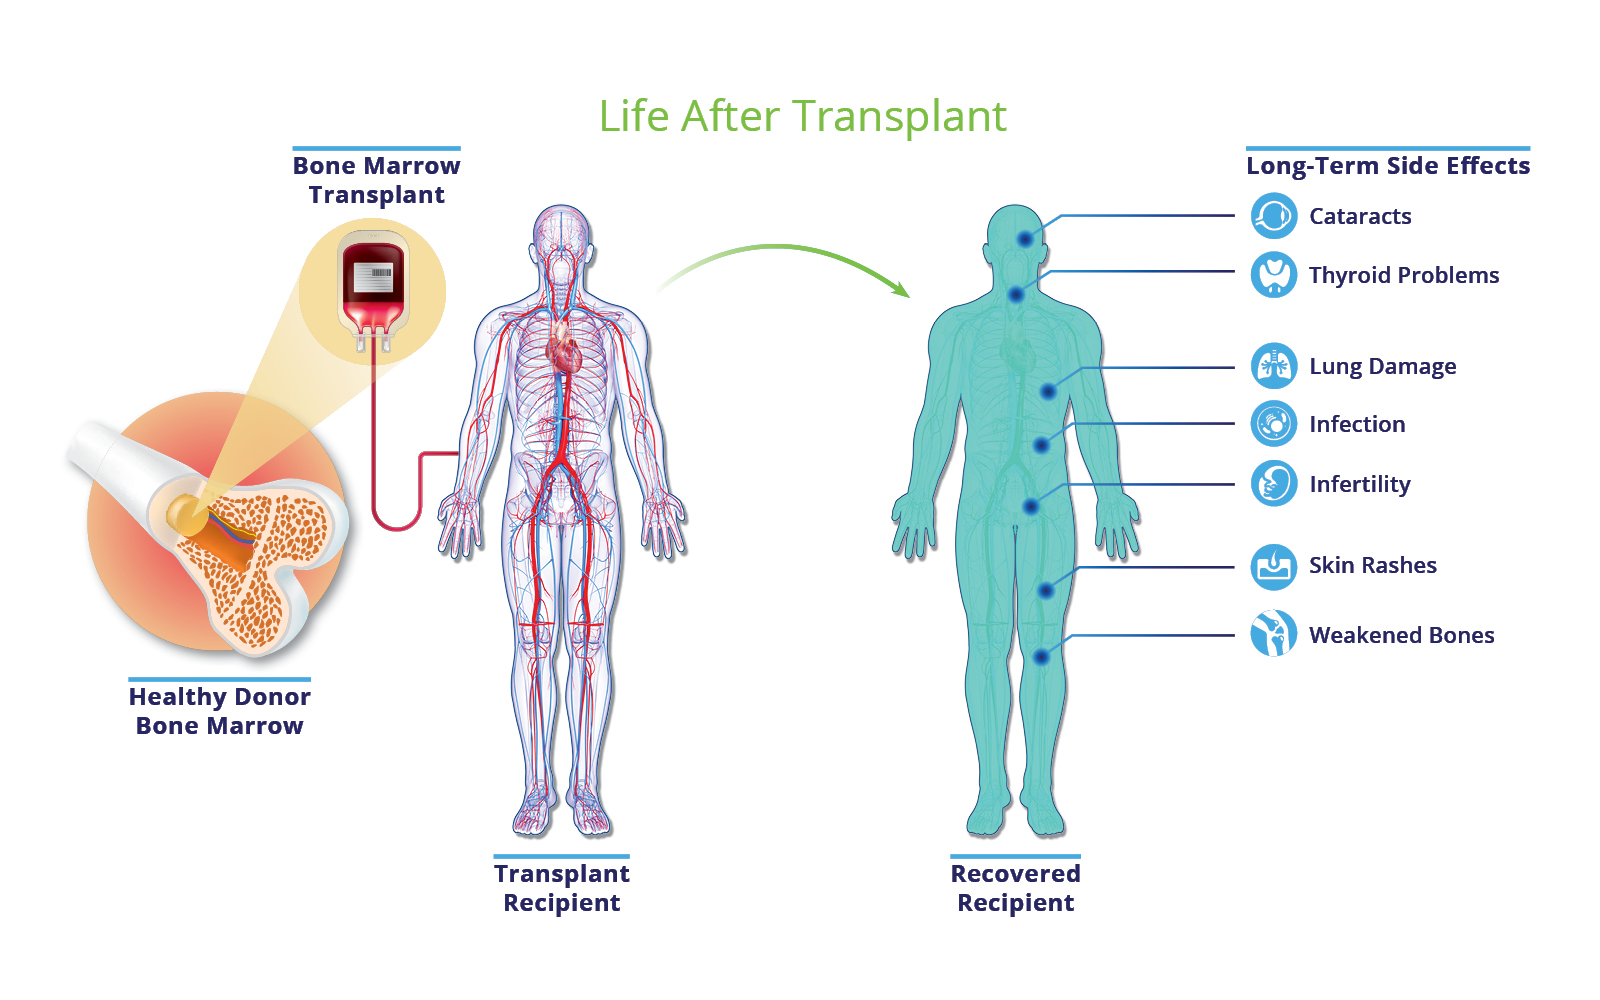 Life after Transplant - Bone marrow transplant survivors may face a variety of side effects years after the procedure.